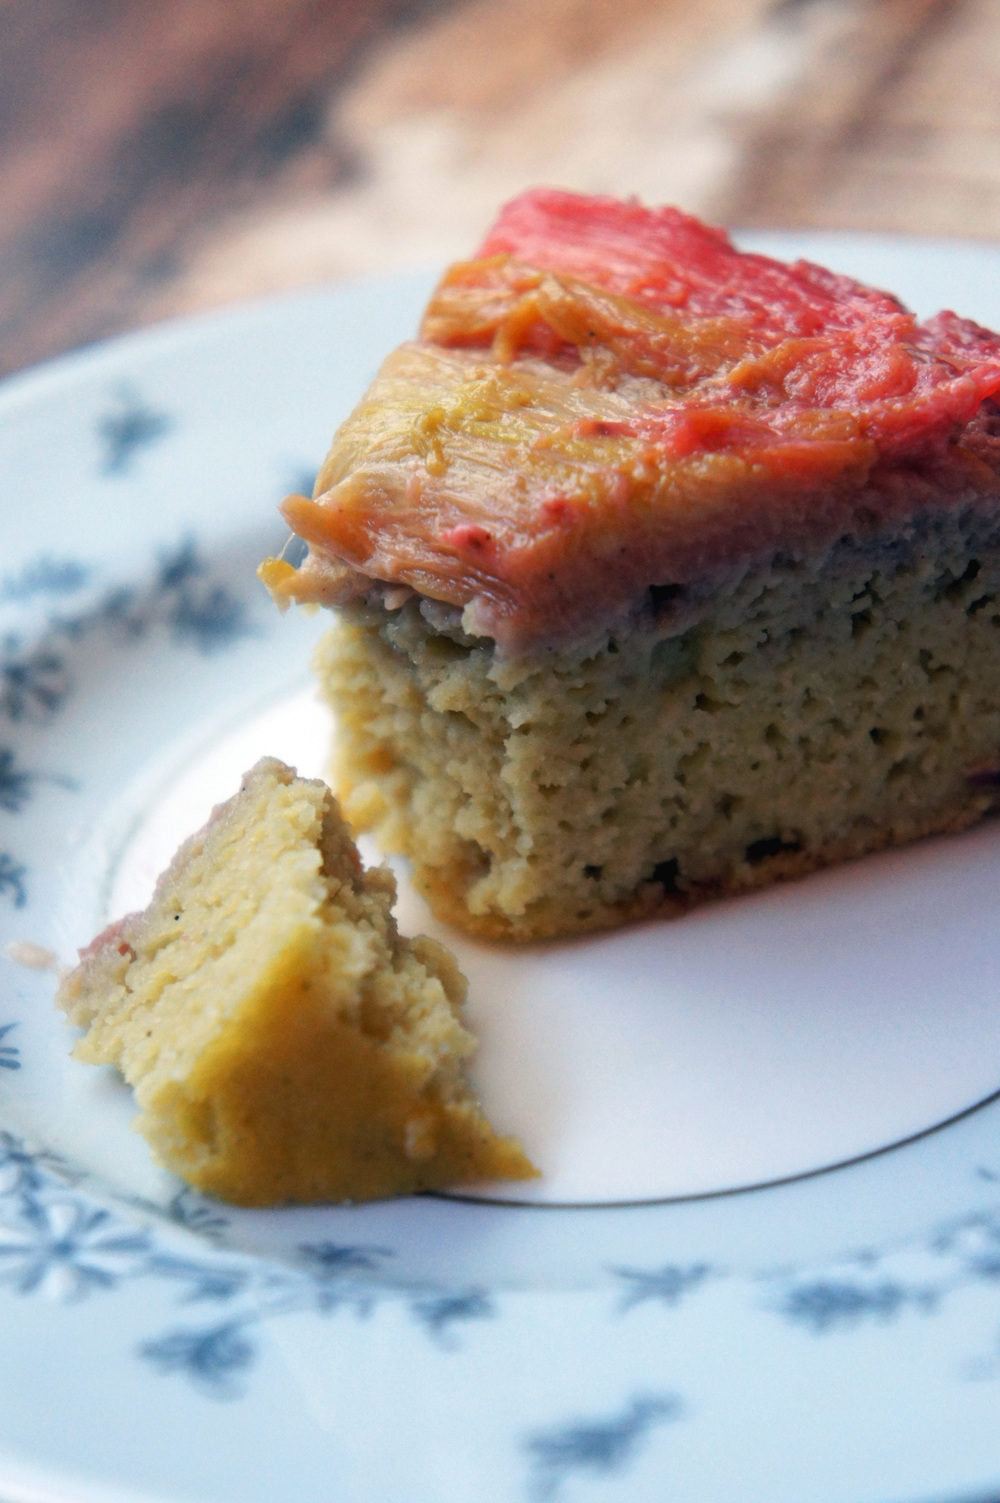 coconut flour rhubarb upside down cake (paleo and low-carb!)